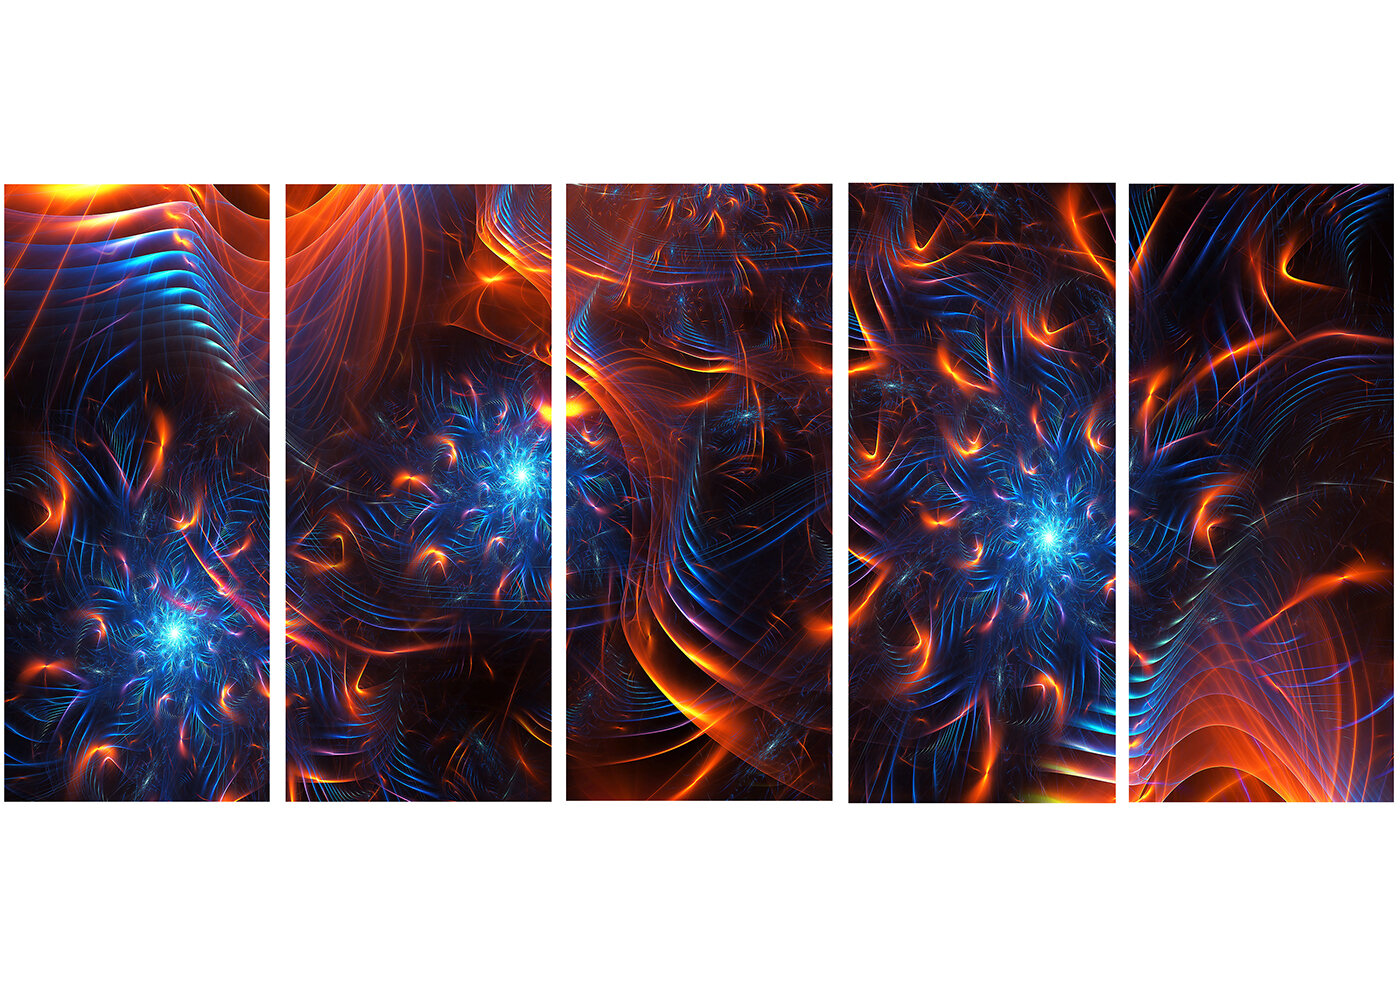 Designart Fire And Ice 5 Piece Graphic Art On Wrapped Canvas Set Wayfair